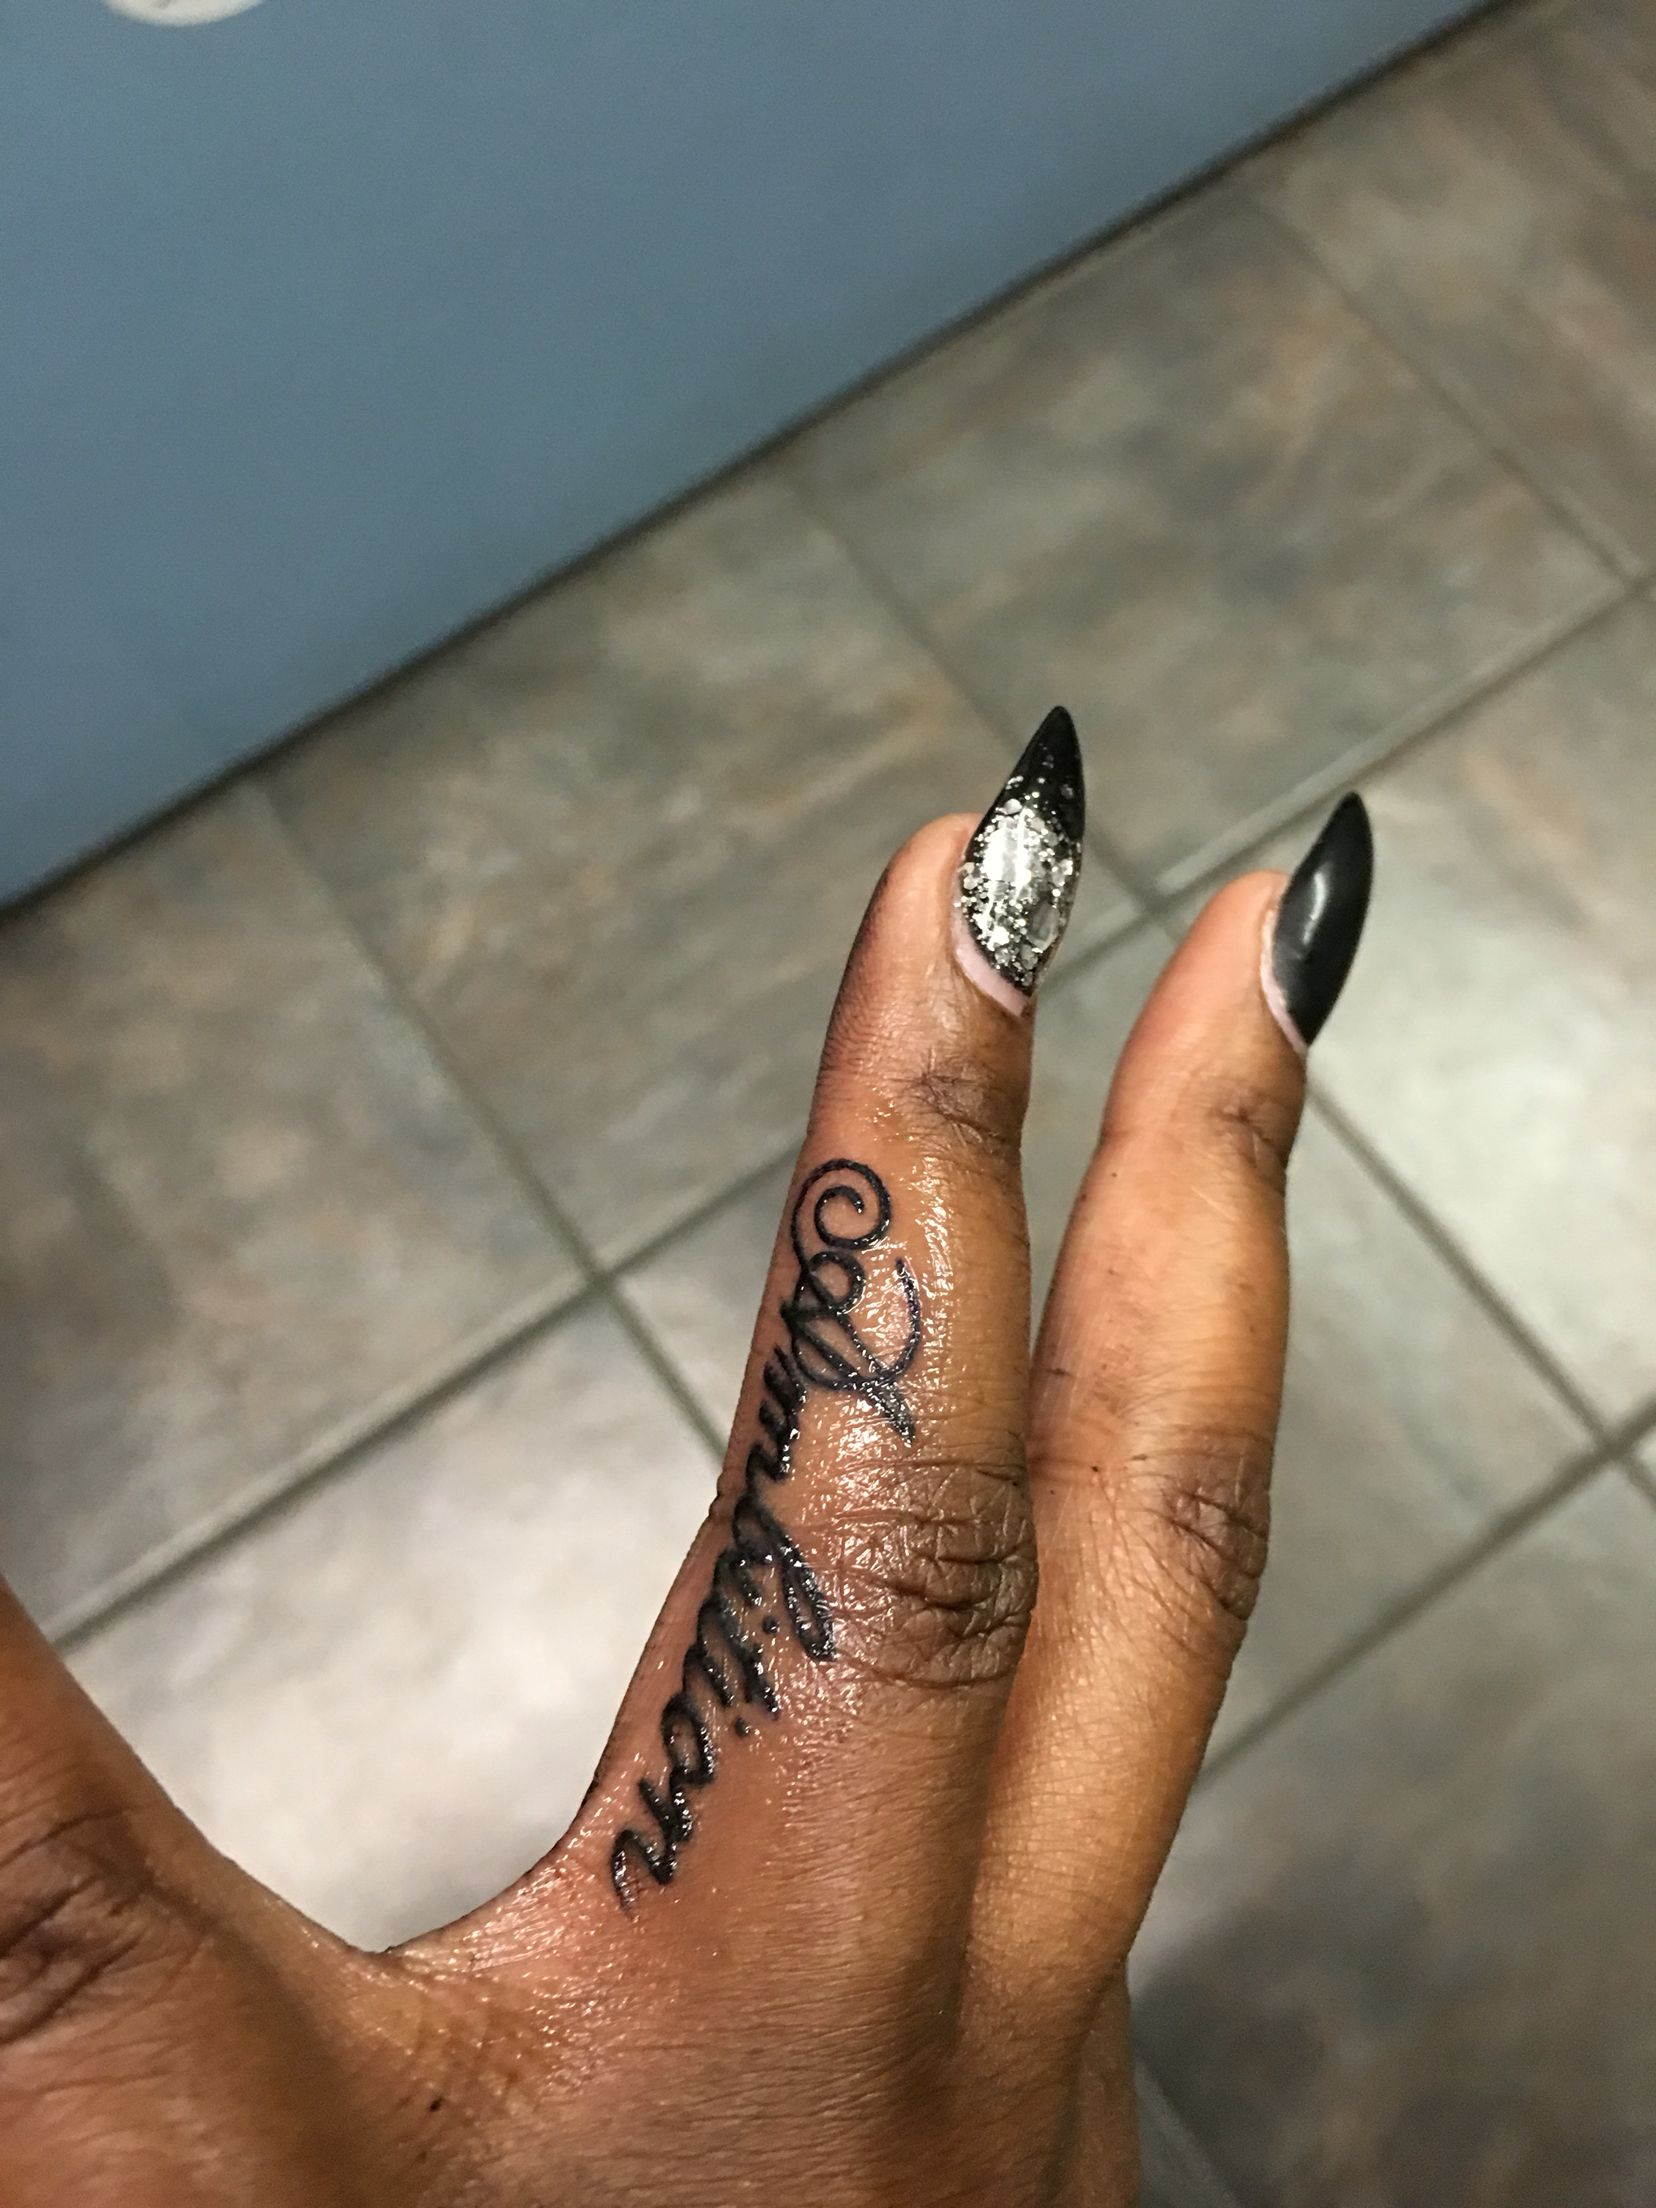 29d17ad7ab6ee My latest tattoo. #Ambition #Capricorn #GoGetter | ink • piercings ...